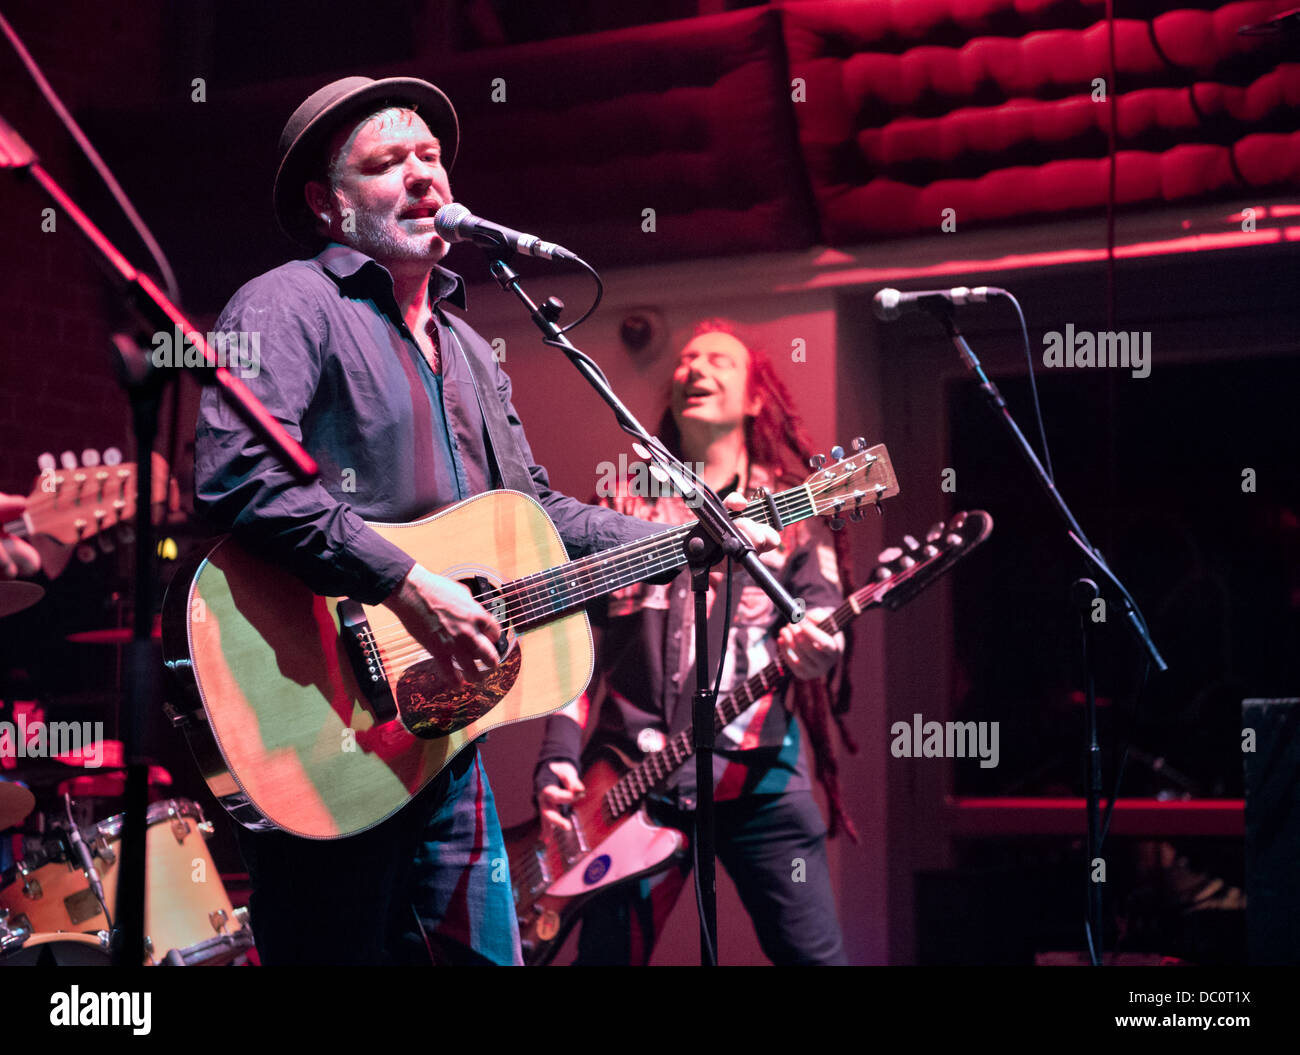 Mark Chadwick and Jeremy Cunningham with their band, The Levellers in concert at the Buttermarket, Shrewsbury, UK, - Stock Image